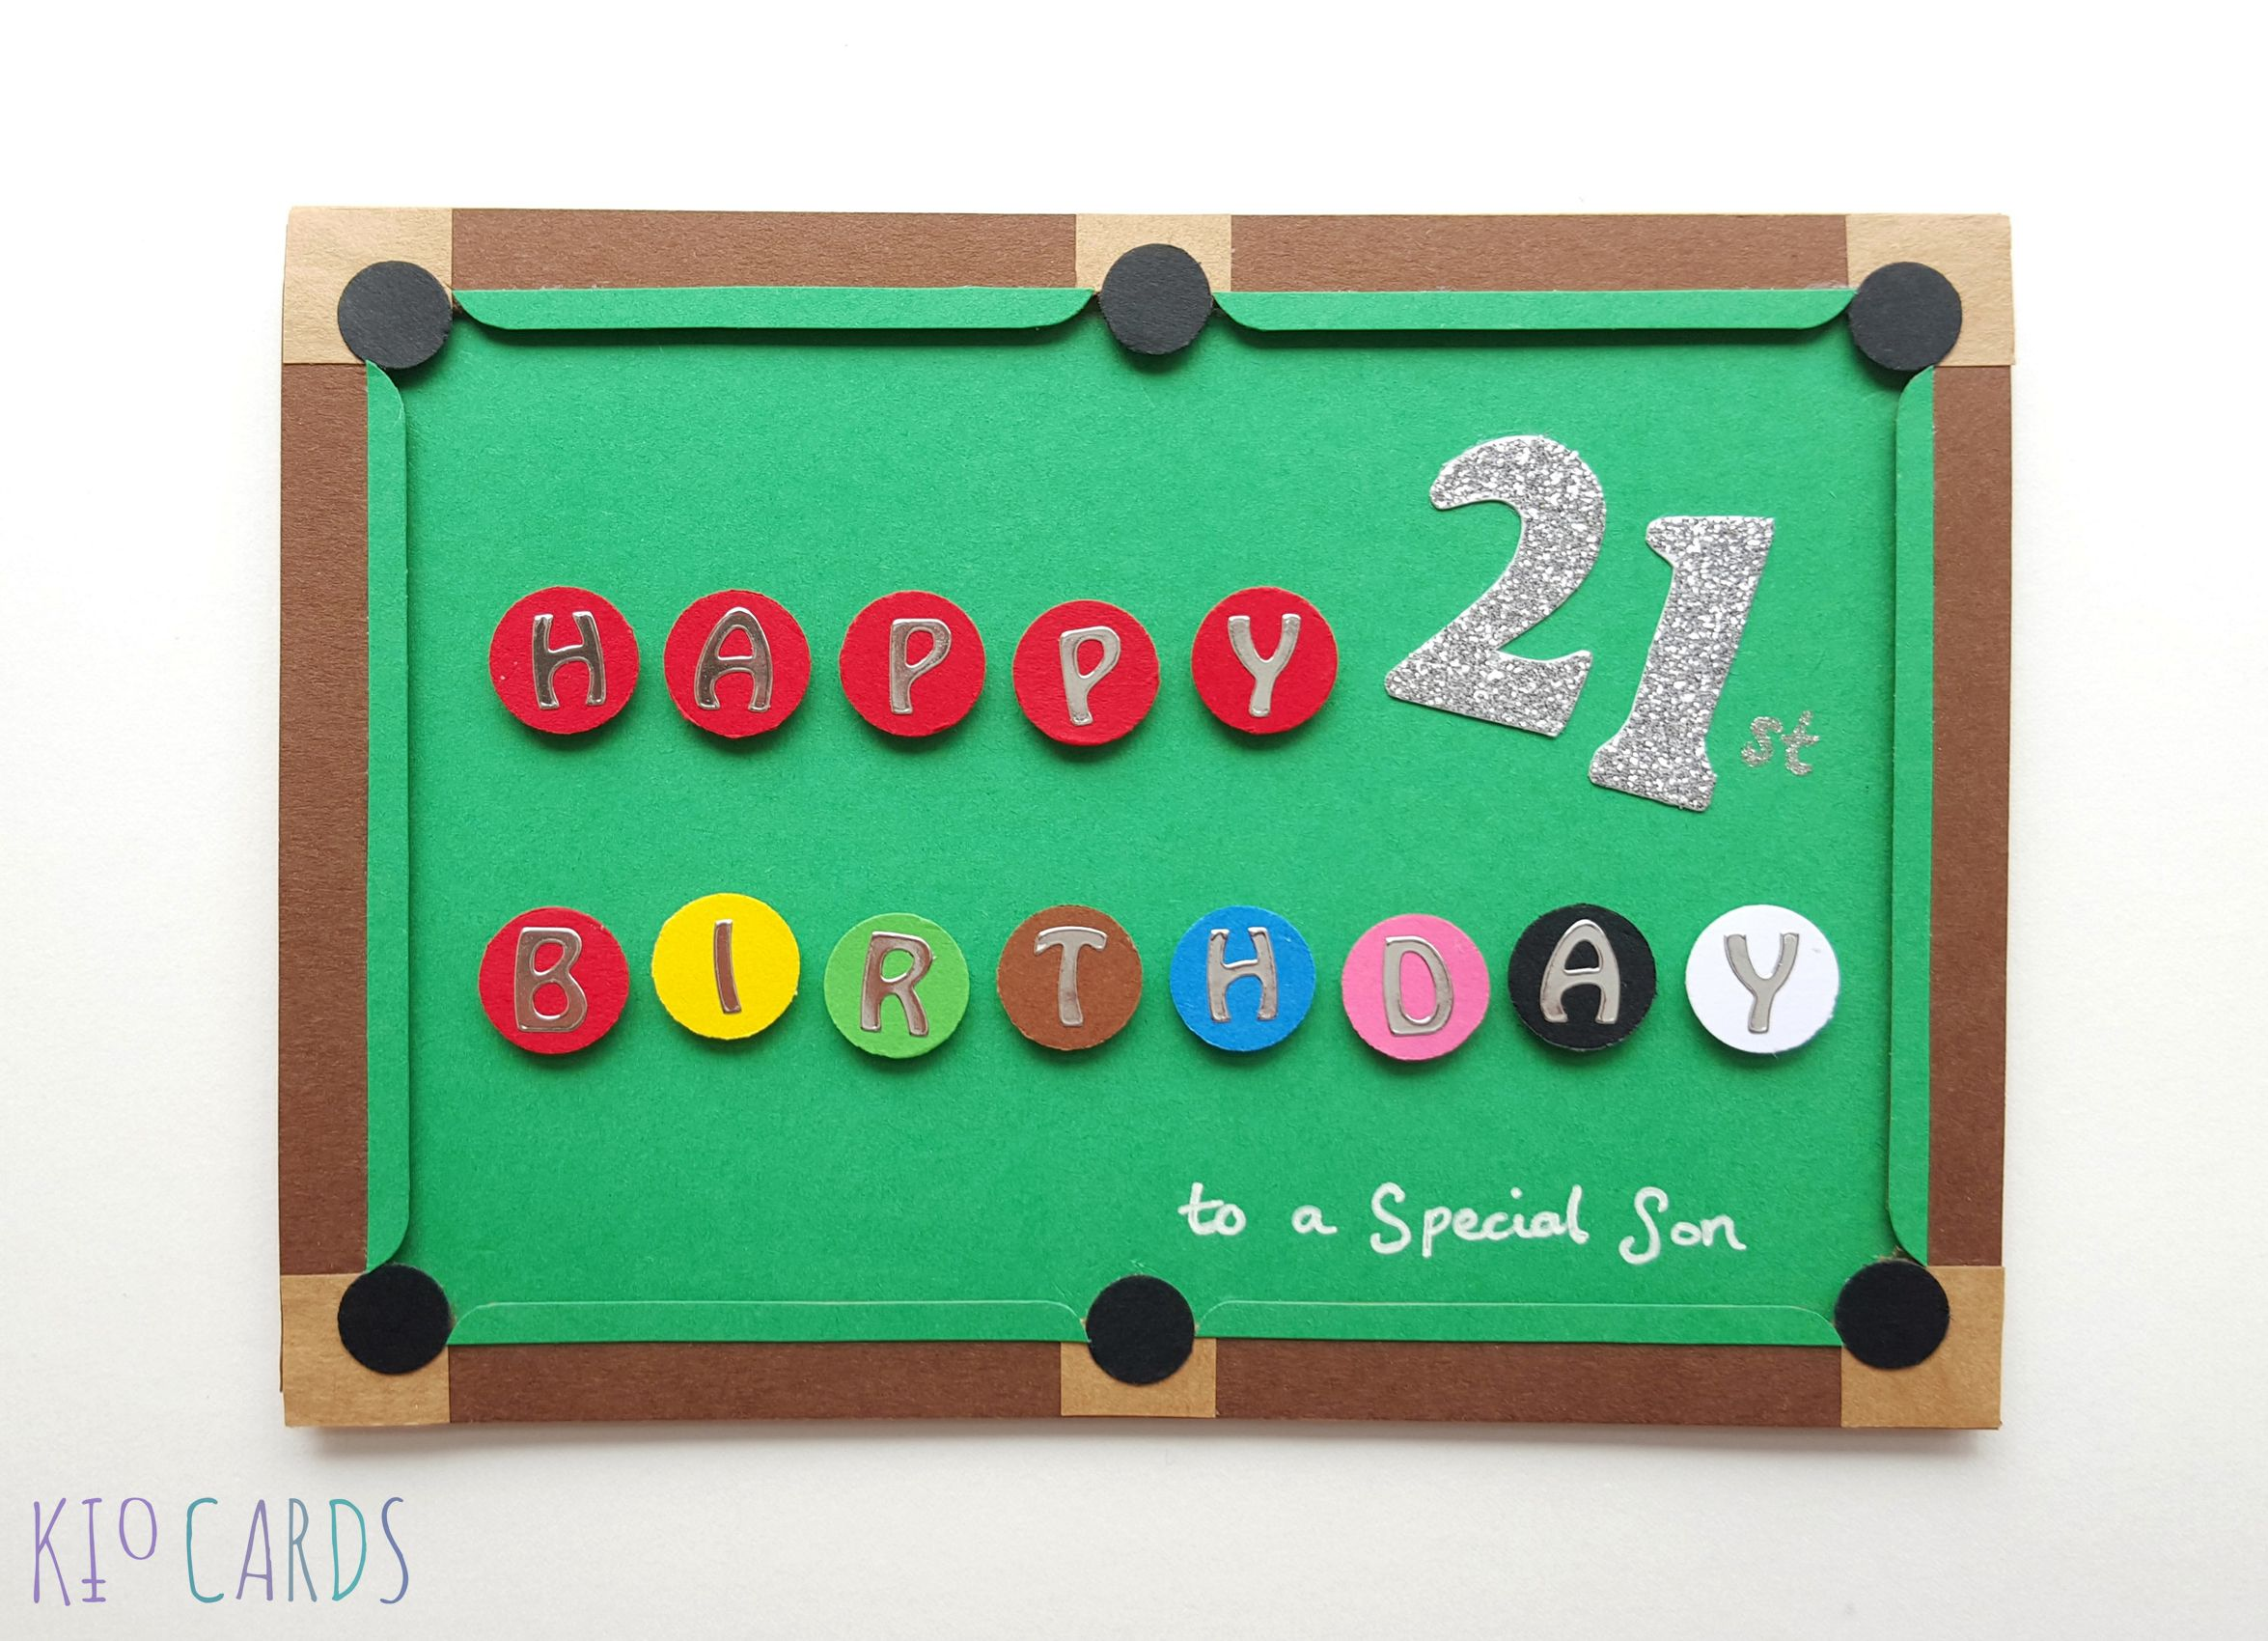 Cool Card Pool Table Birthday Cards 21st